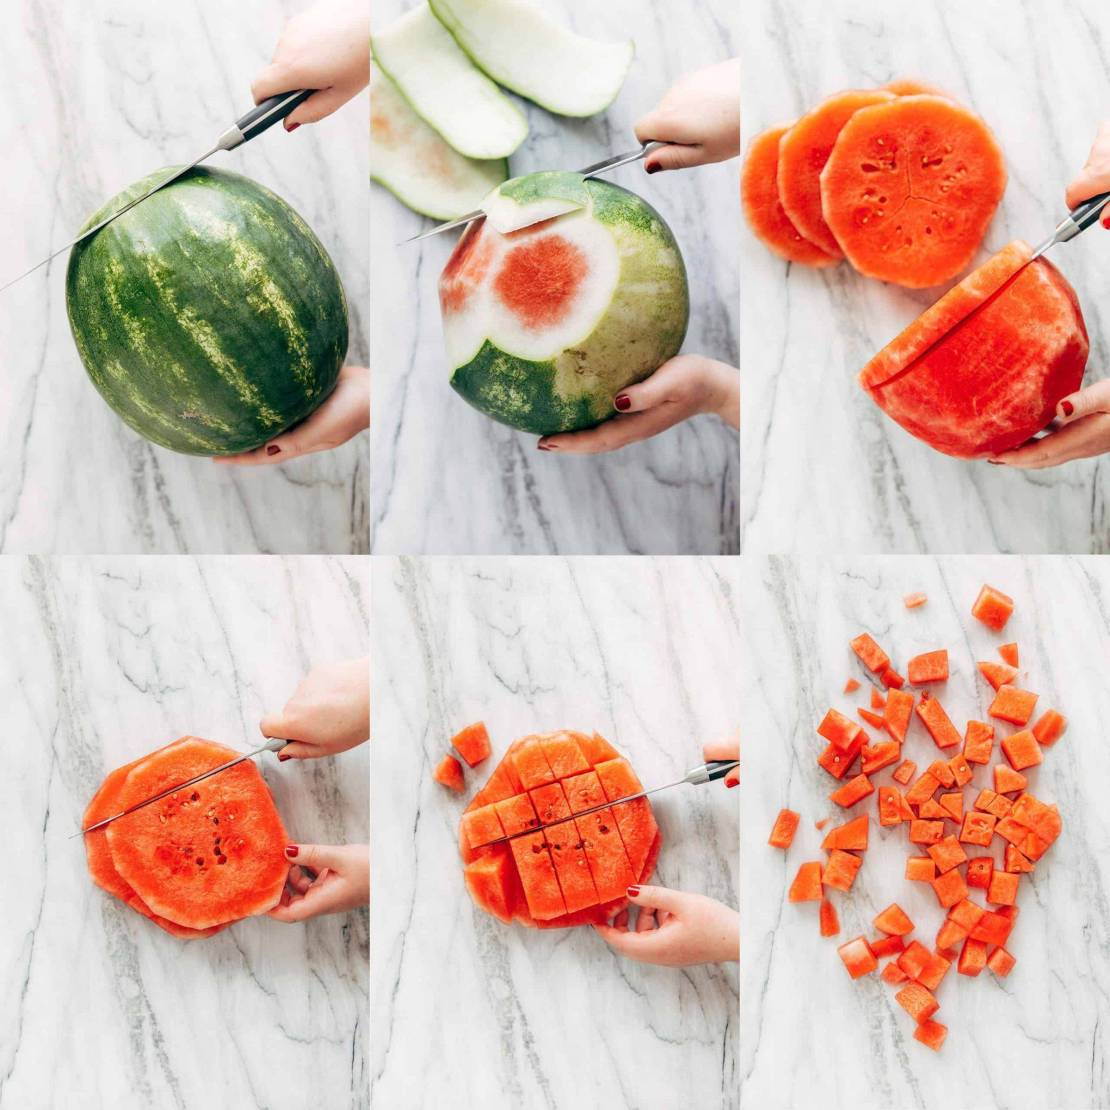 Collage showing how to cut a watermelon into cubes.